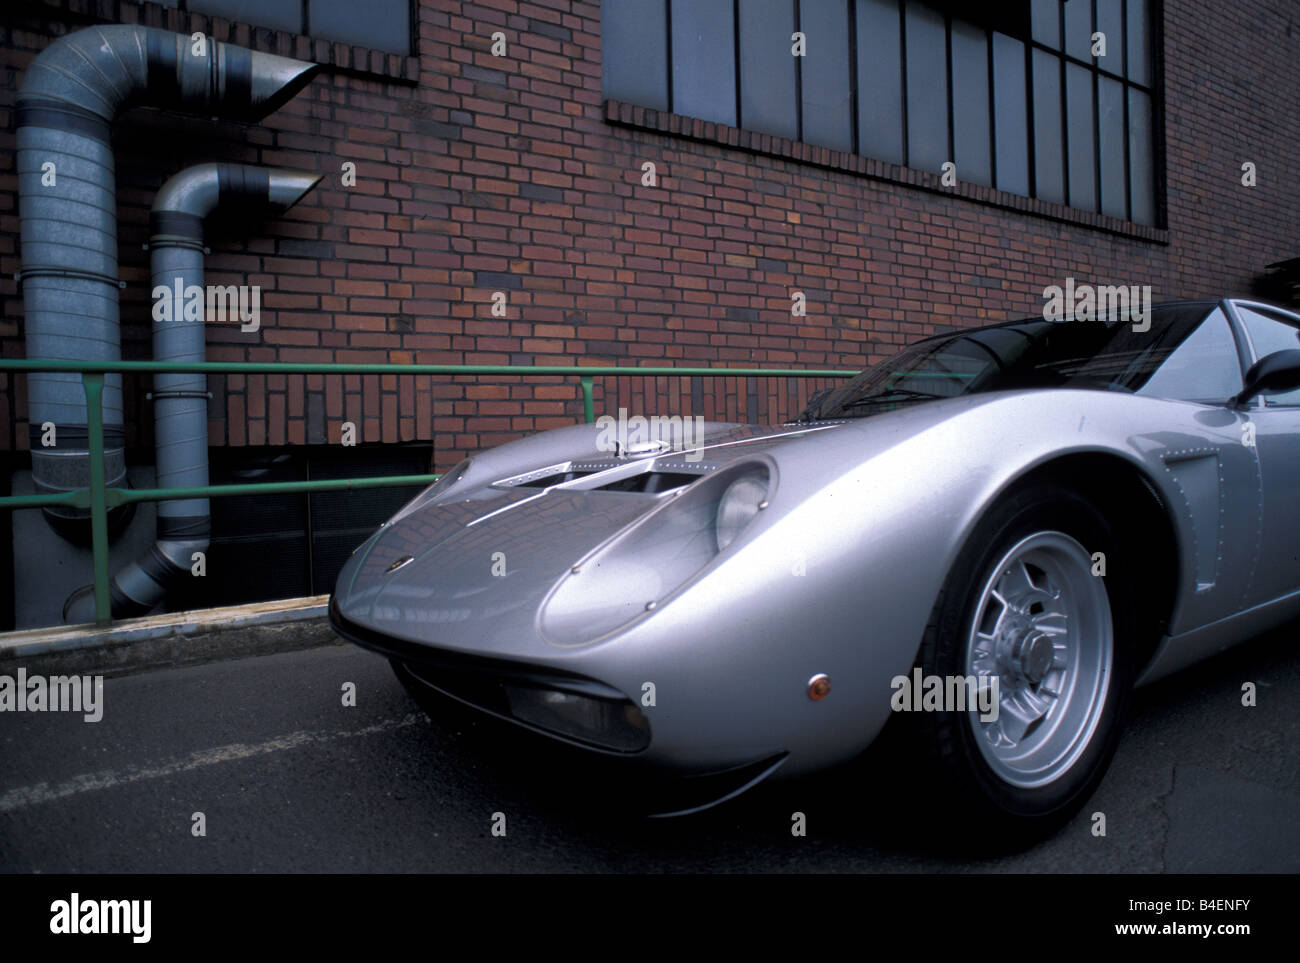 https://c8.alamy.com/comp/B4ENFY/car-lamborghini-miura-sv-jota-model-year-1970s-seventies-silver-sports-B4ENFY.jpg